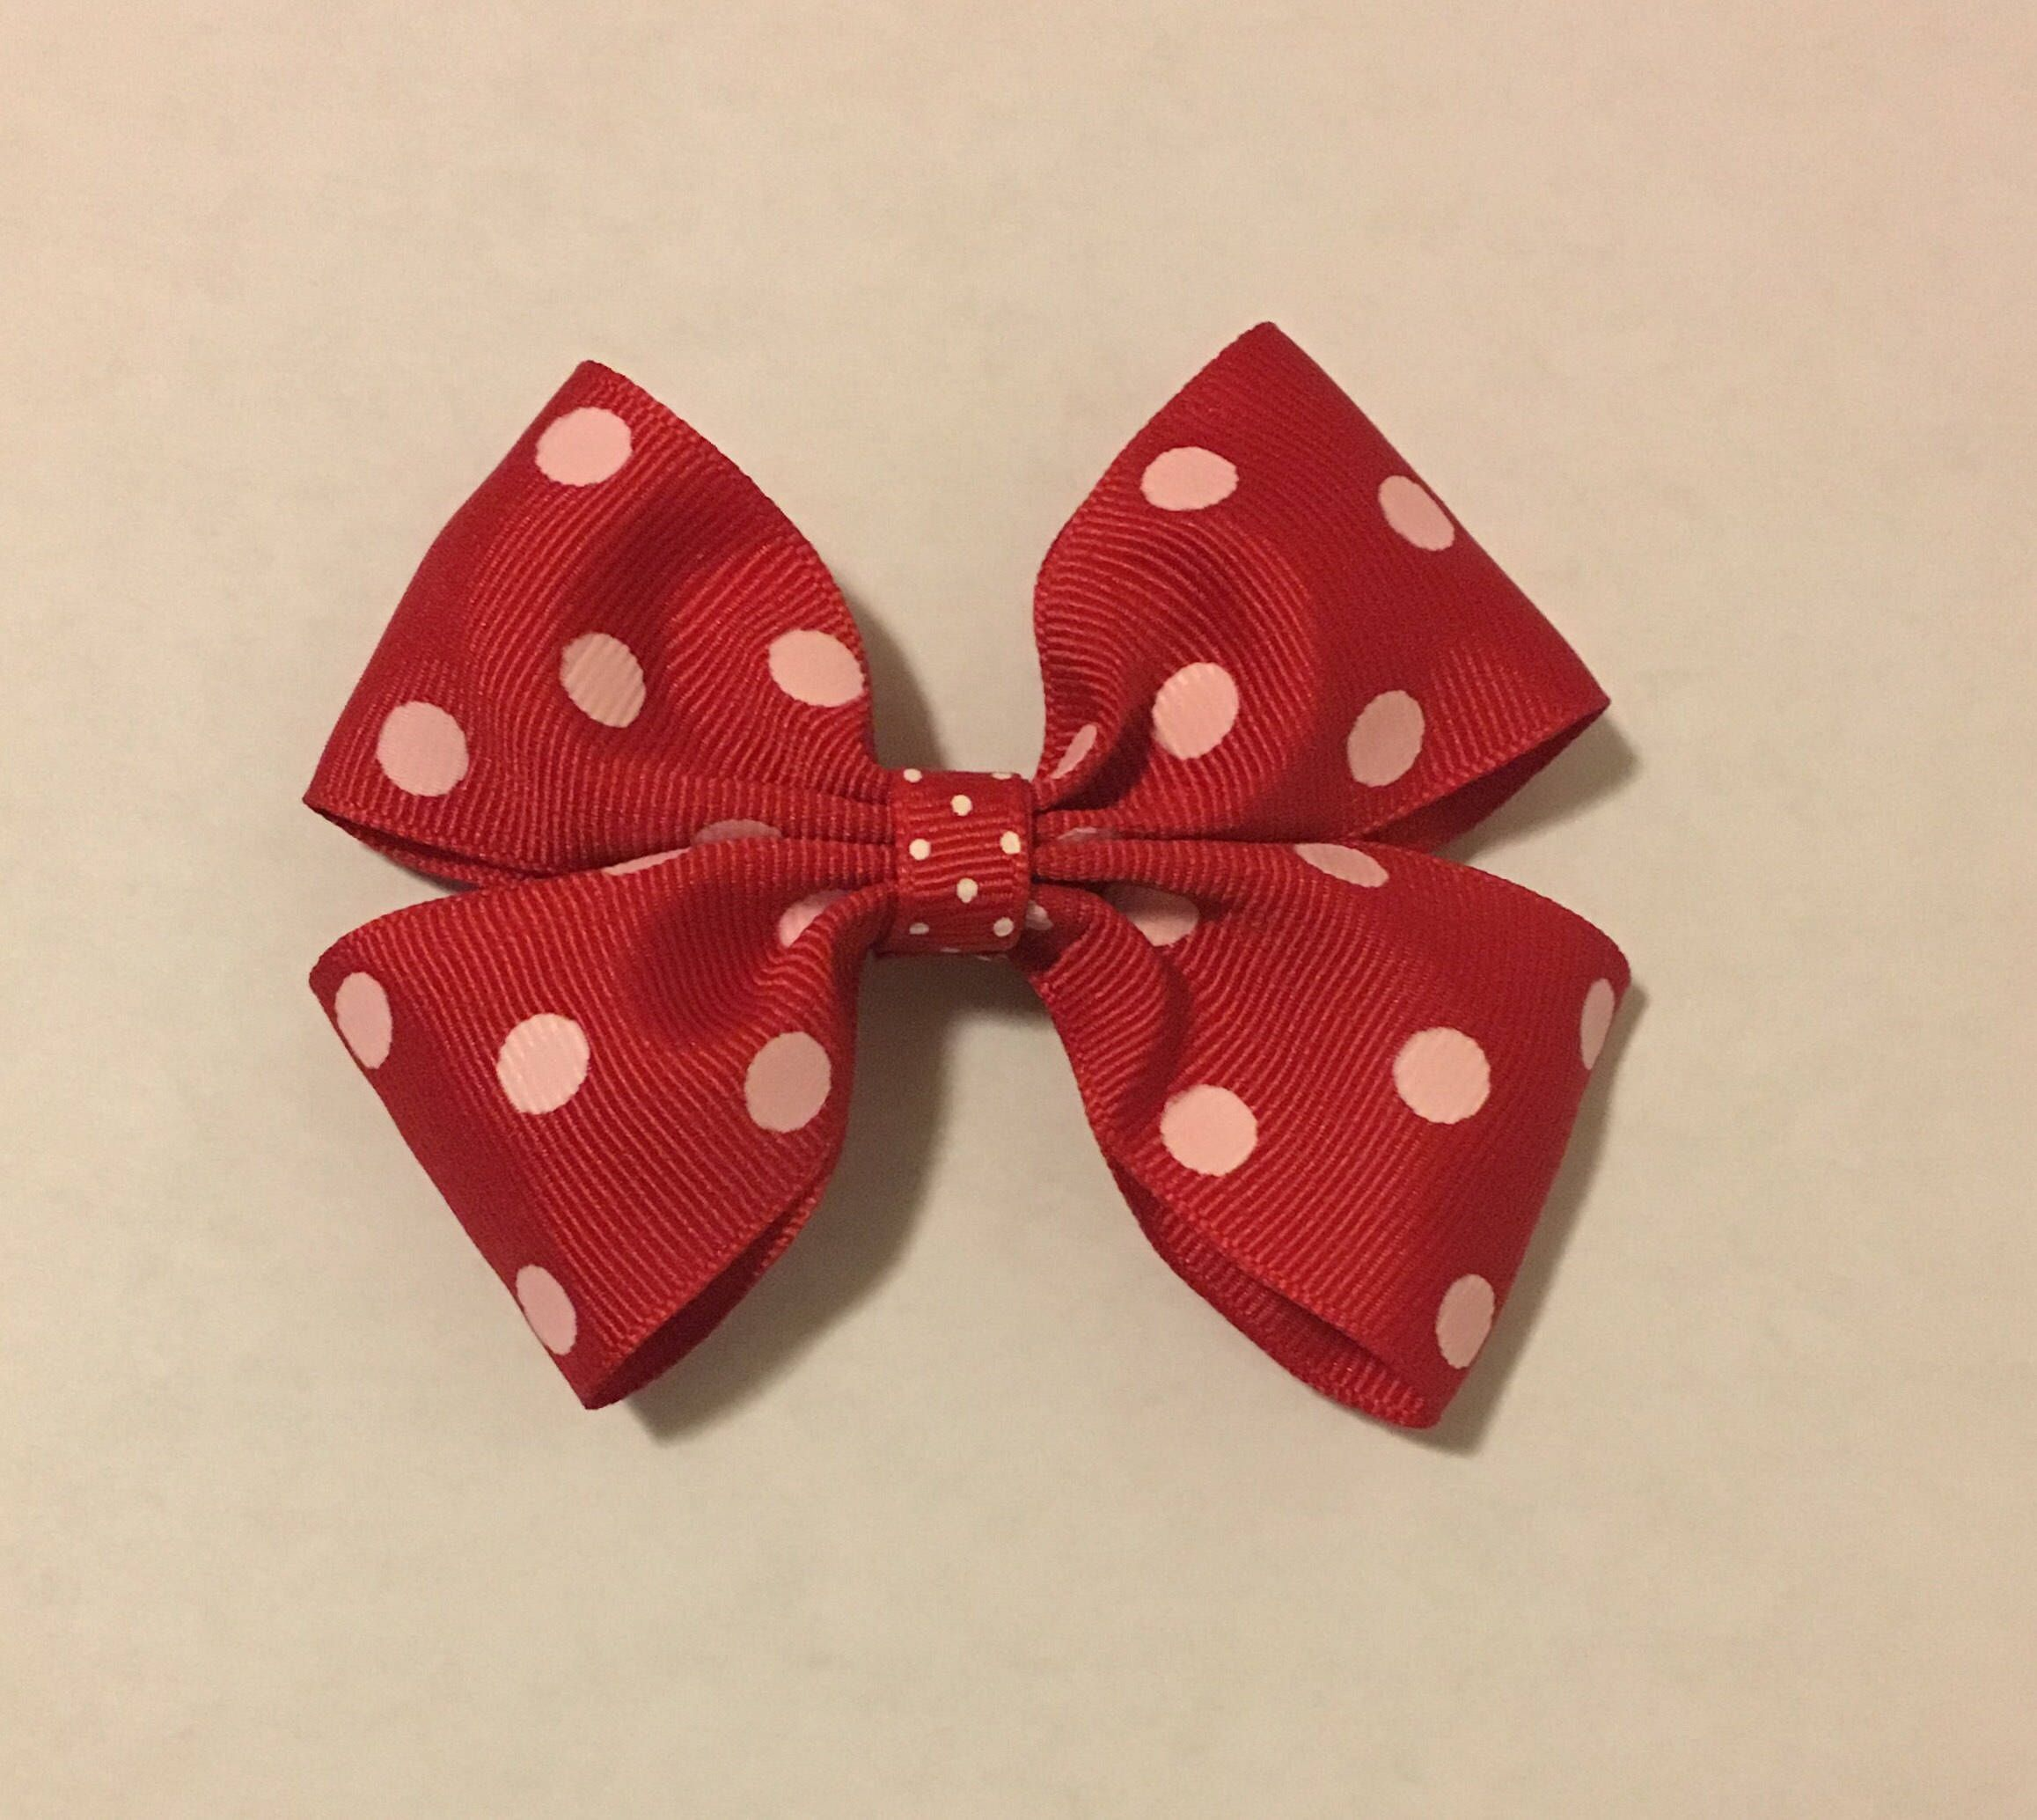 """Excited to share the latest addition to my #etsy shop: 4"""" Red Polka Dot Hair Bow #accessories #polkadotbow #redhairbow #portababy"""